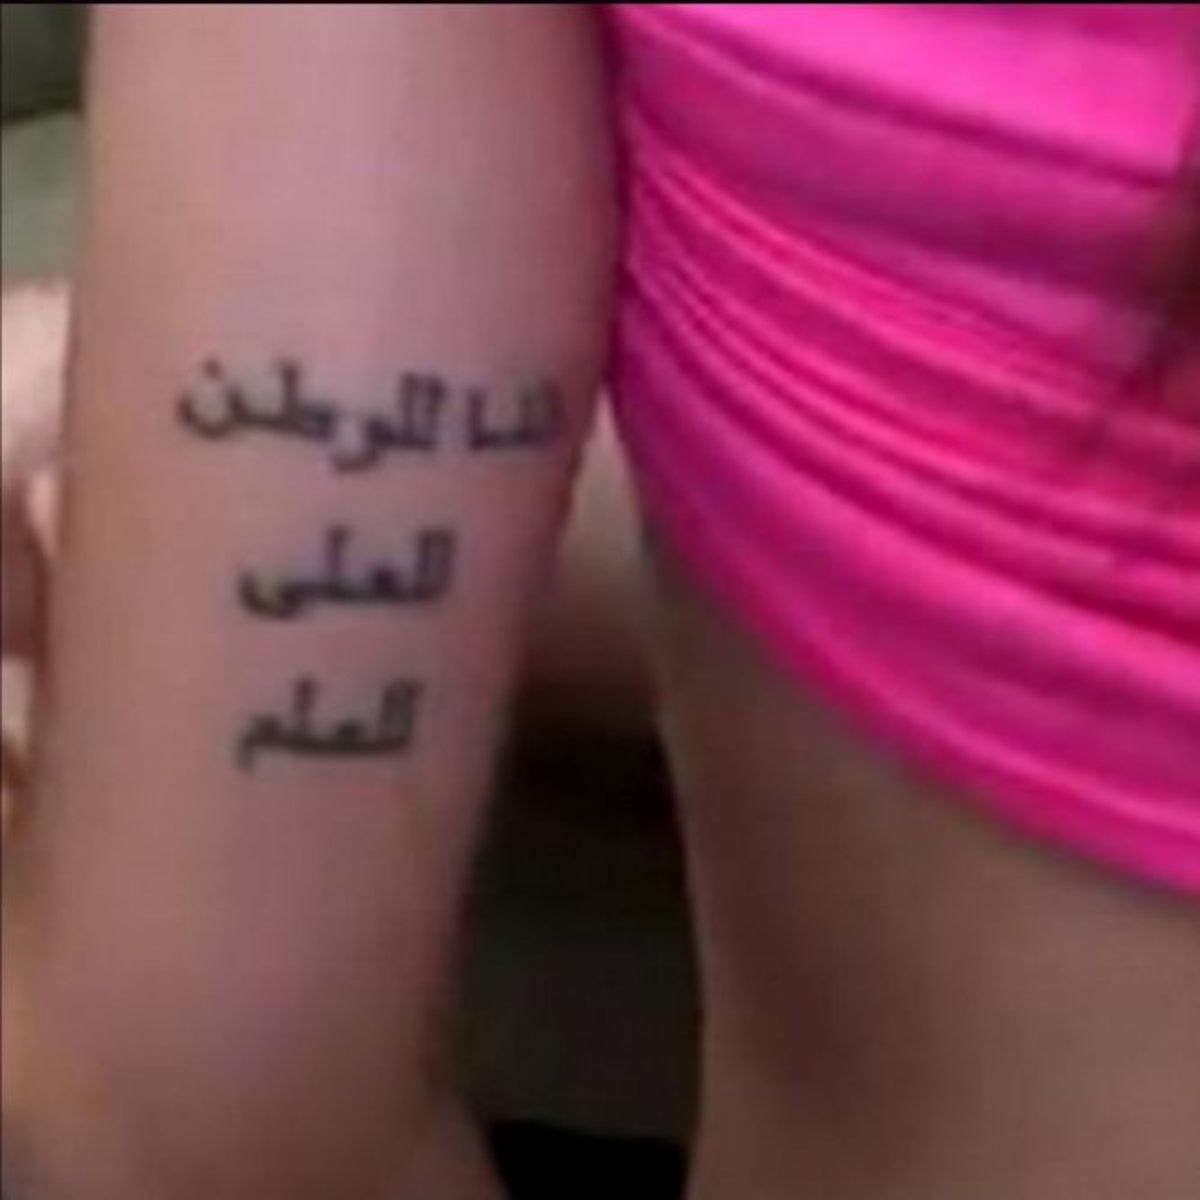 That tattoo that's sparked a lot of controversy among the Muslim community.